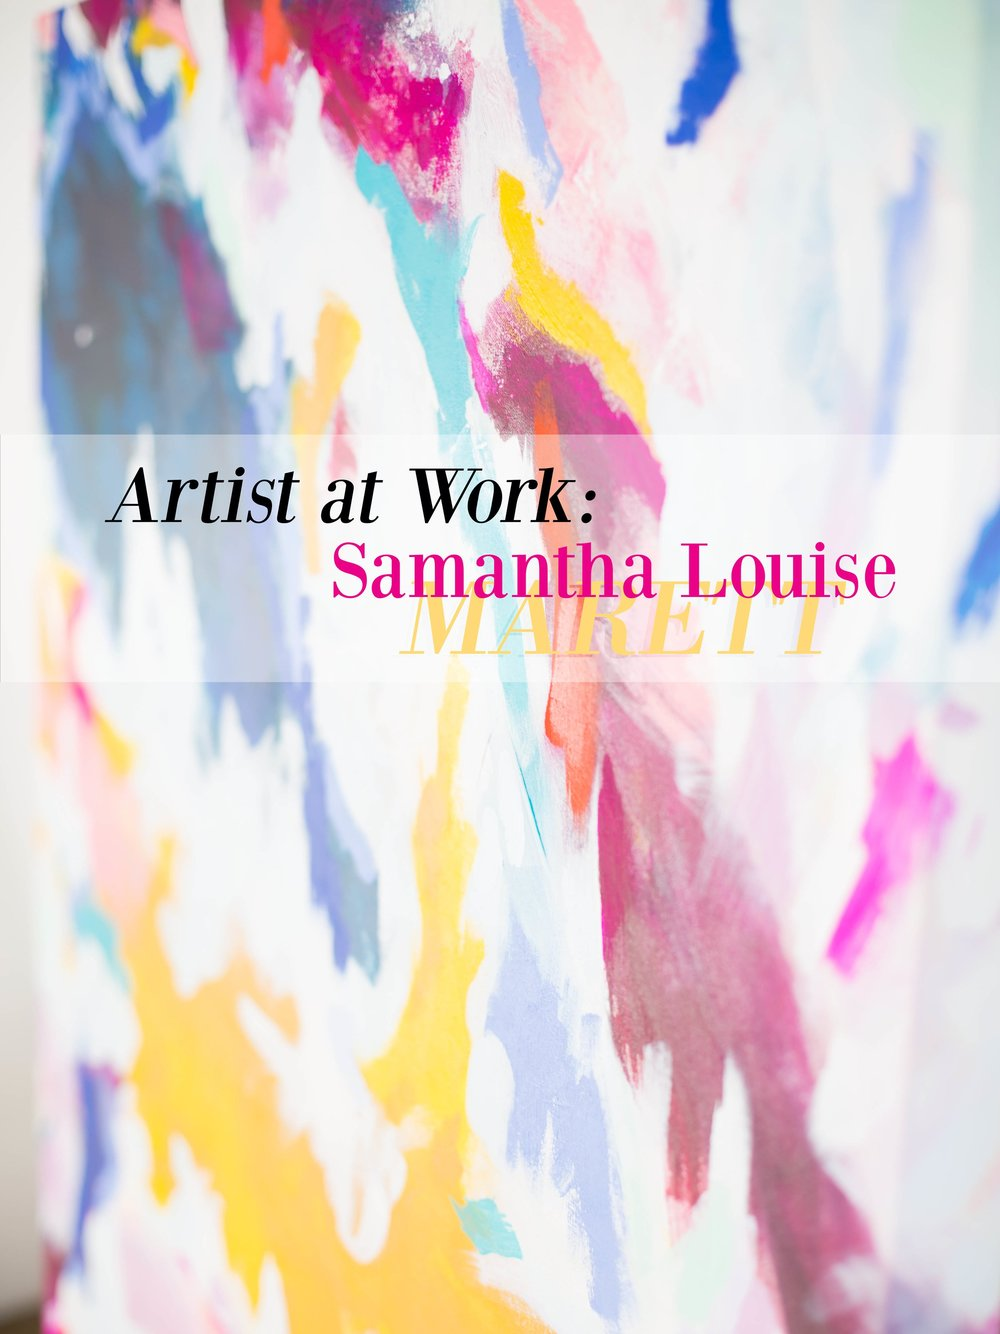 paint-brush-strokes-san-diego-branding-photographer-samantha-louise-marett-artist